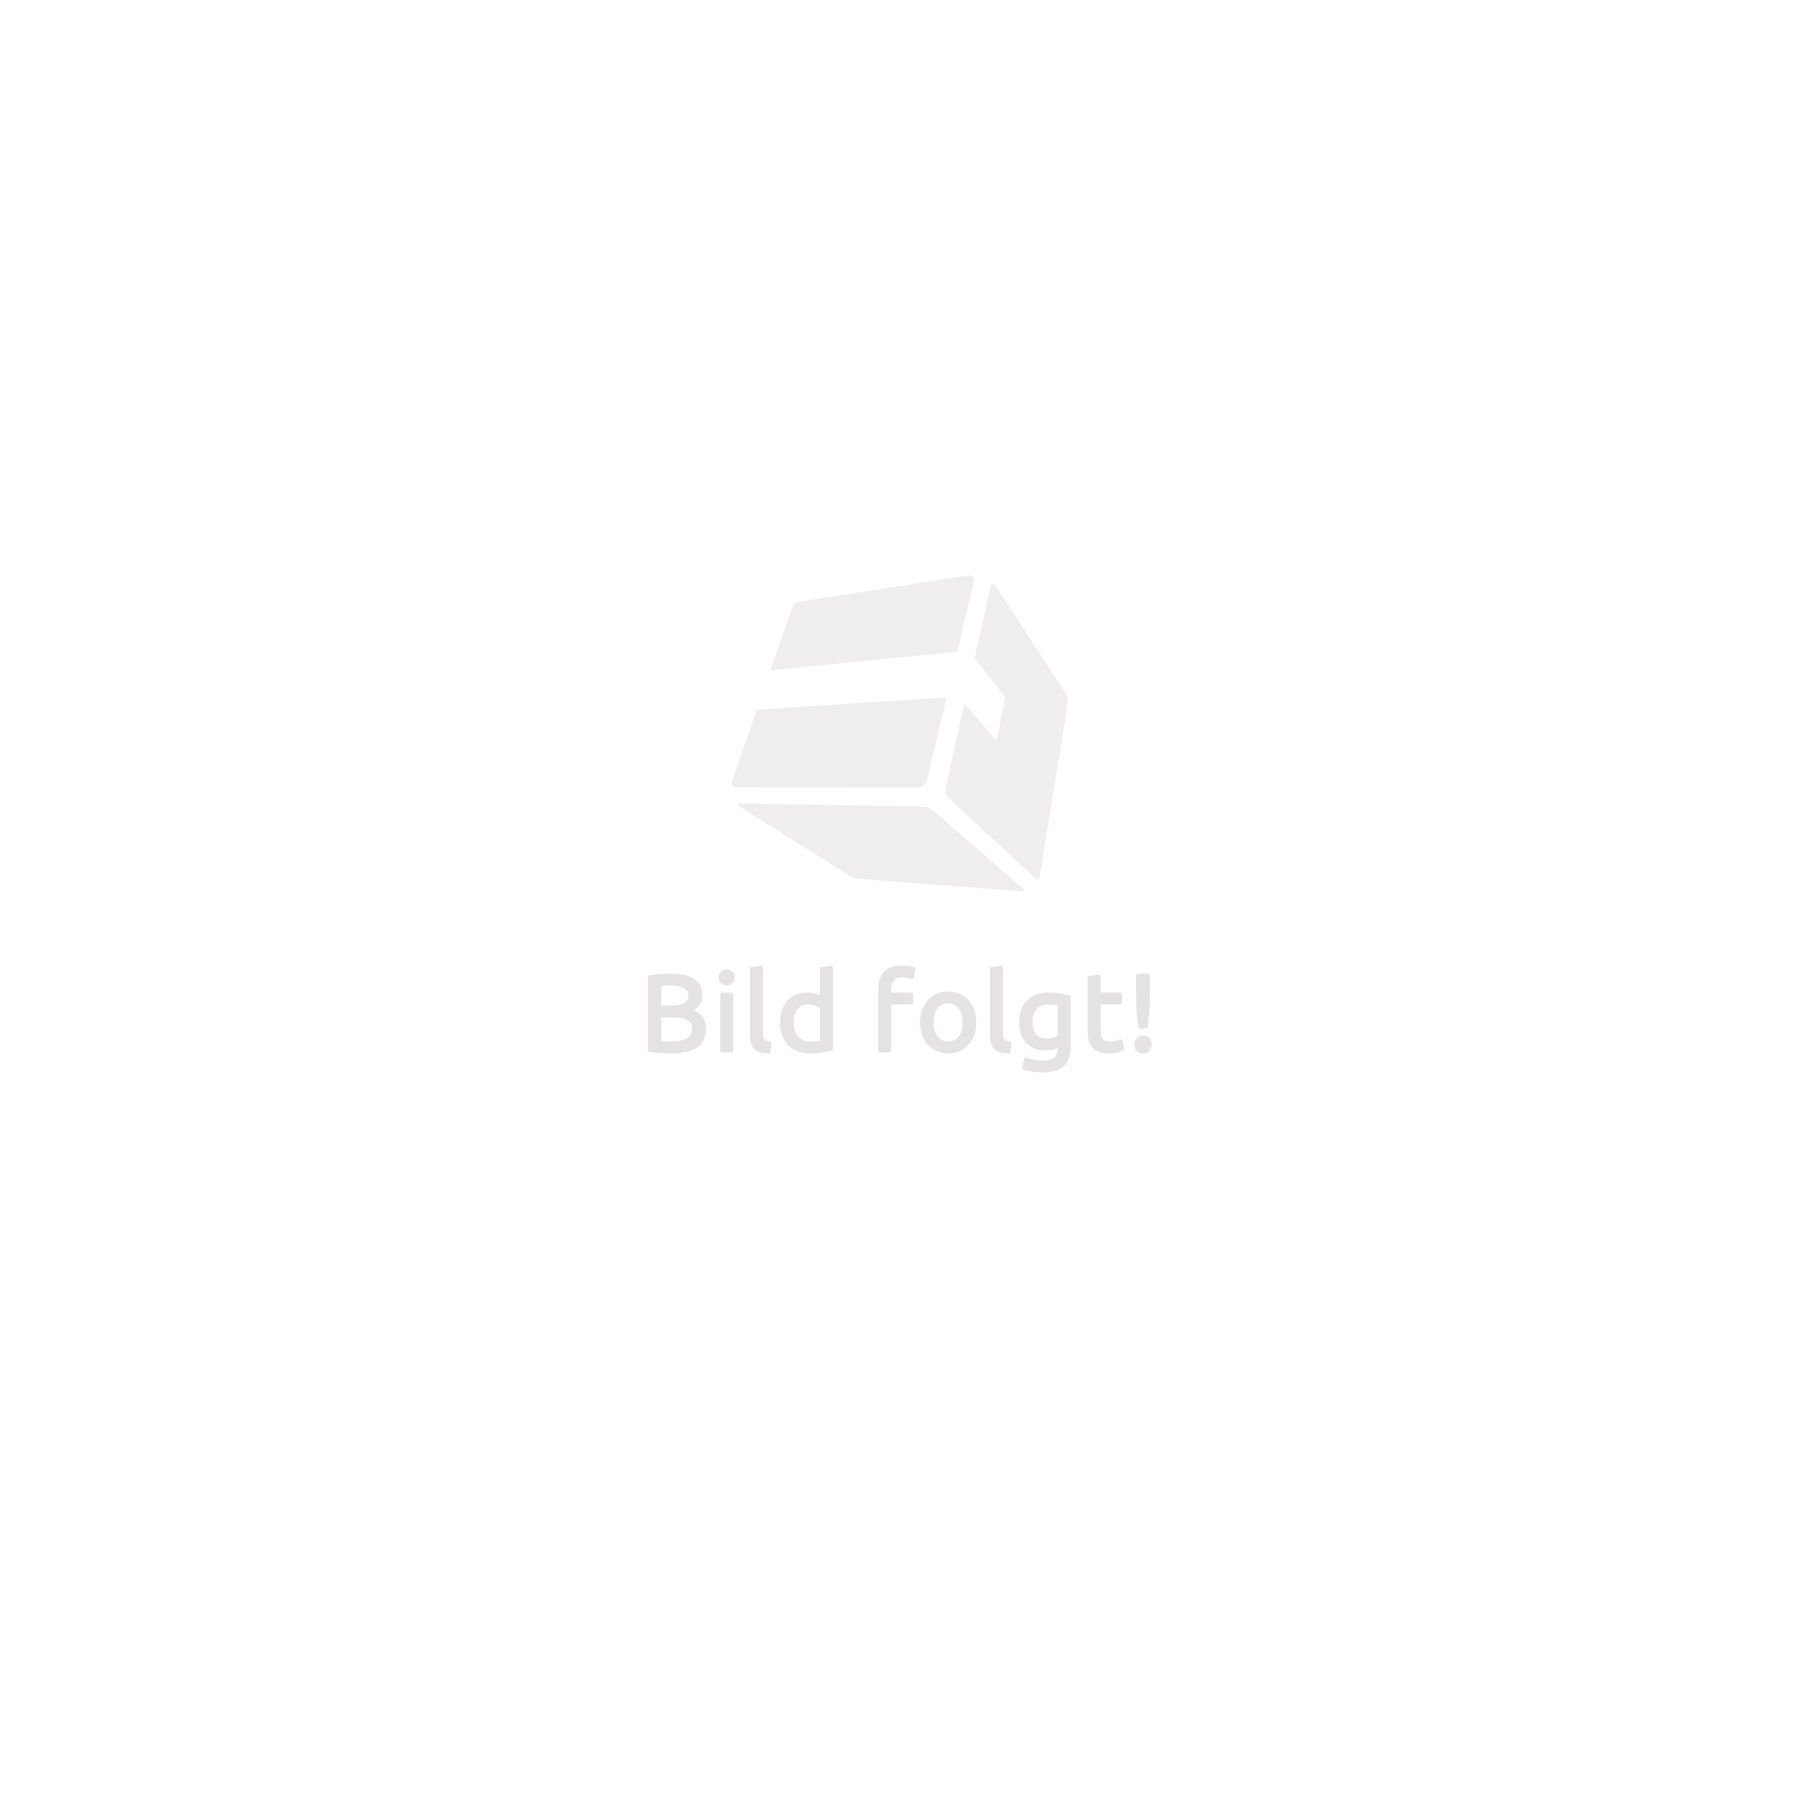 Table de massage Pliante 3 Zones Aluminium Portable + Housse noir